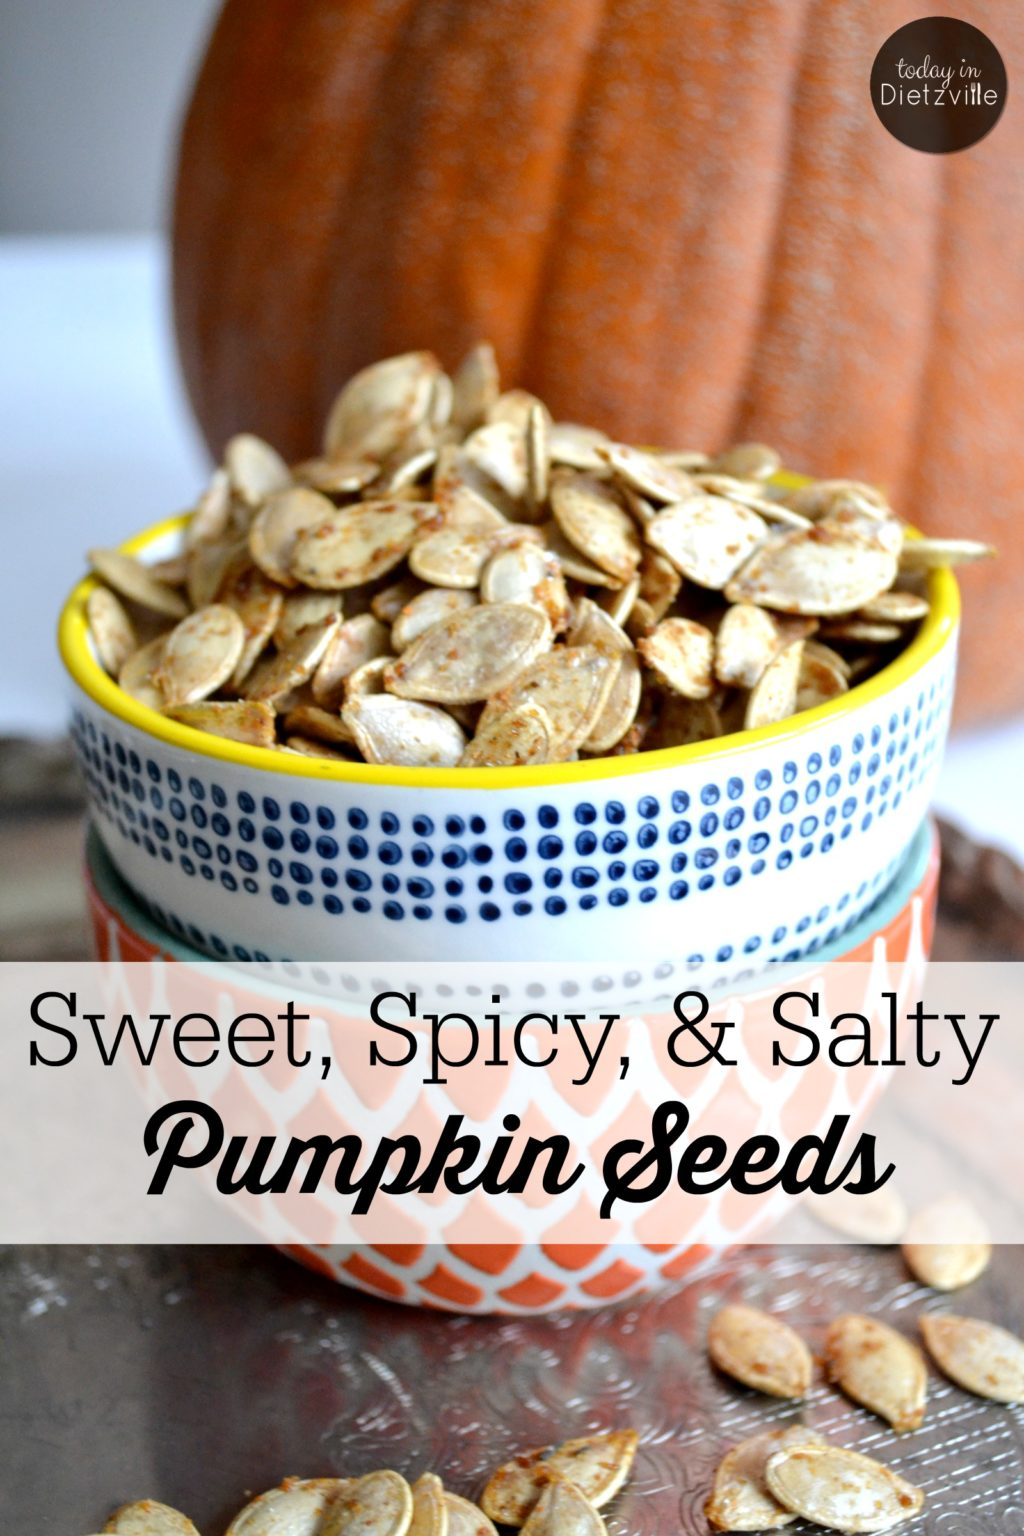 Sweet, Spicy, & Salty Pumpkin Seeds | Pumpkin seeds make an excellent, quick snack for adults and kids alike. Just a handful supplies you with a healthy dose of magnesium and immune-boosting zinc. These tasty, crispy pumpkin seeds satisfy all the cravings: a little bit sweet, a little bit spicy, and a little bit salty. | AllTheNourishingThings.com